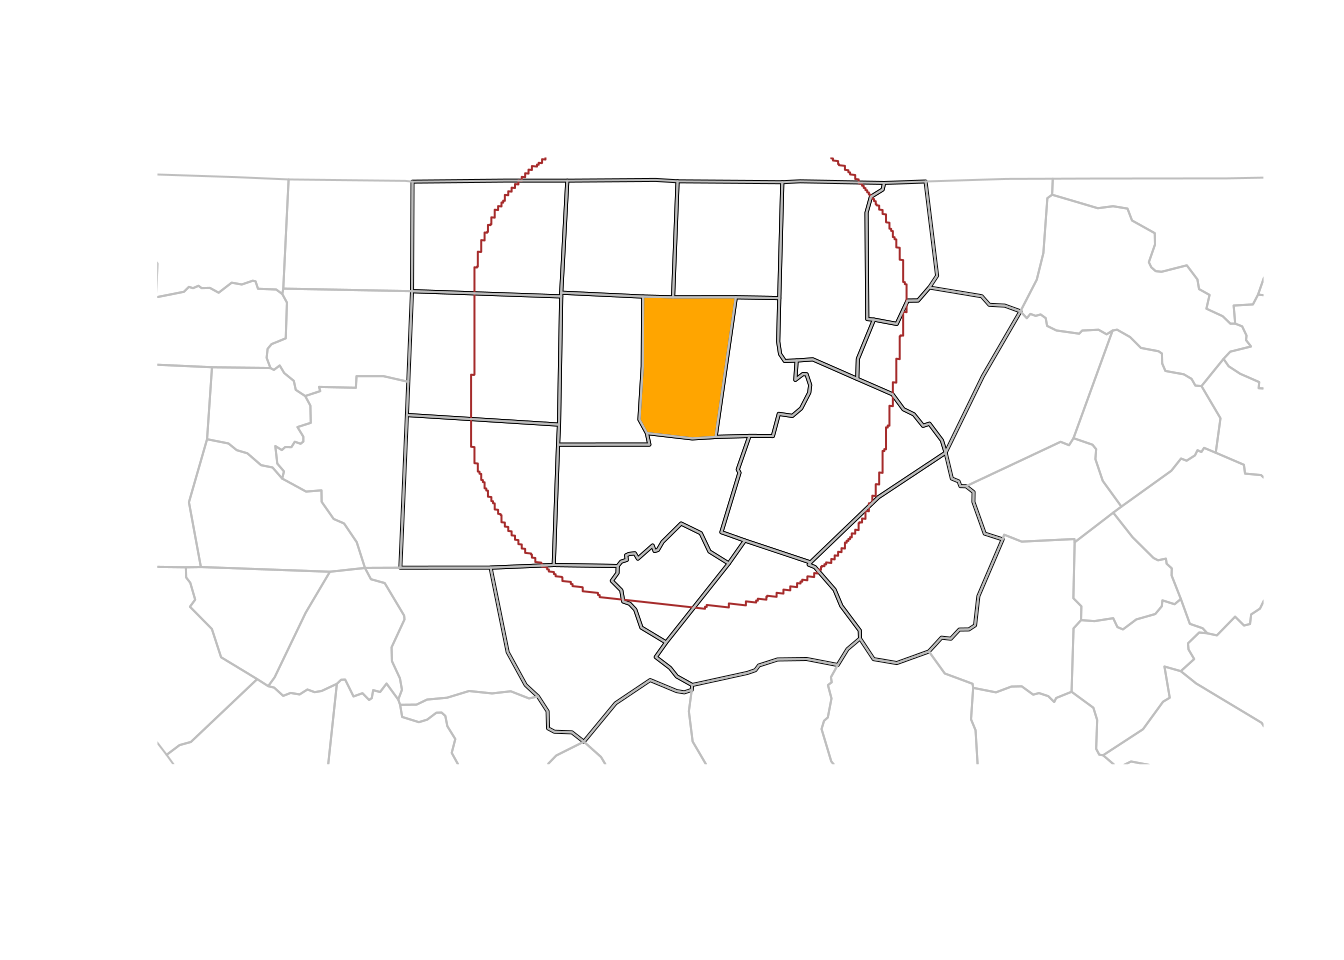 Orange county (orange), counties within a 50 km radius (black), a 50 km buffer around Orange county (brown), and remaining counties (grey)